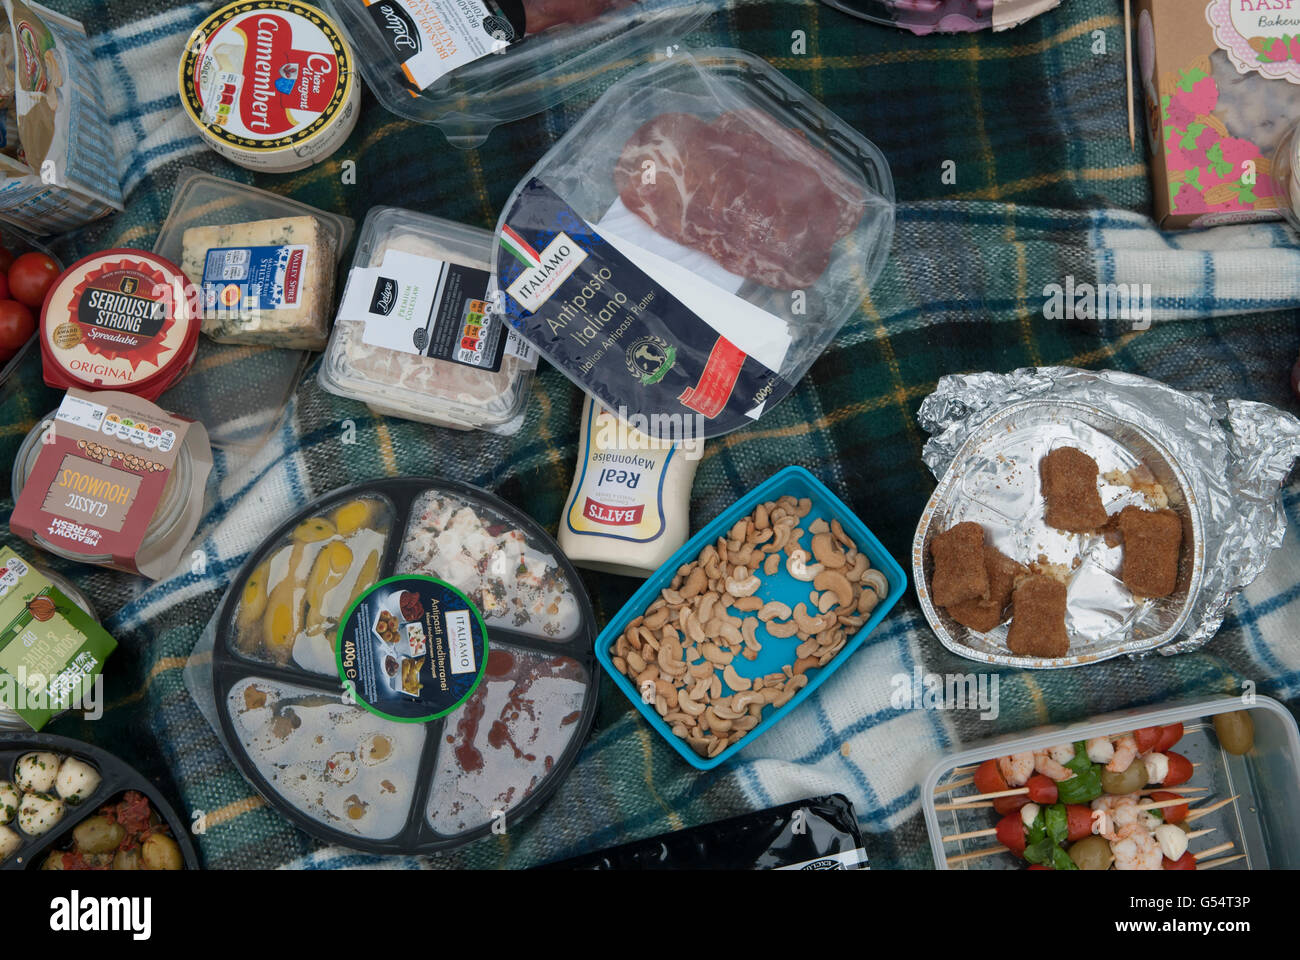 Picnic Uk shop bought food plastic wrappers spread out on picnic blanket HOMER SYKES - Stock Image